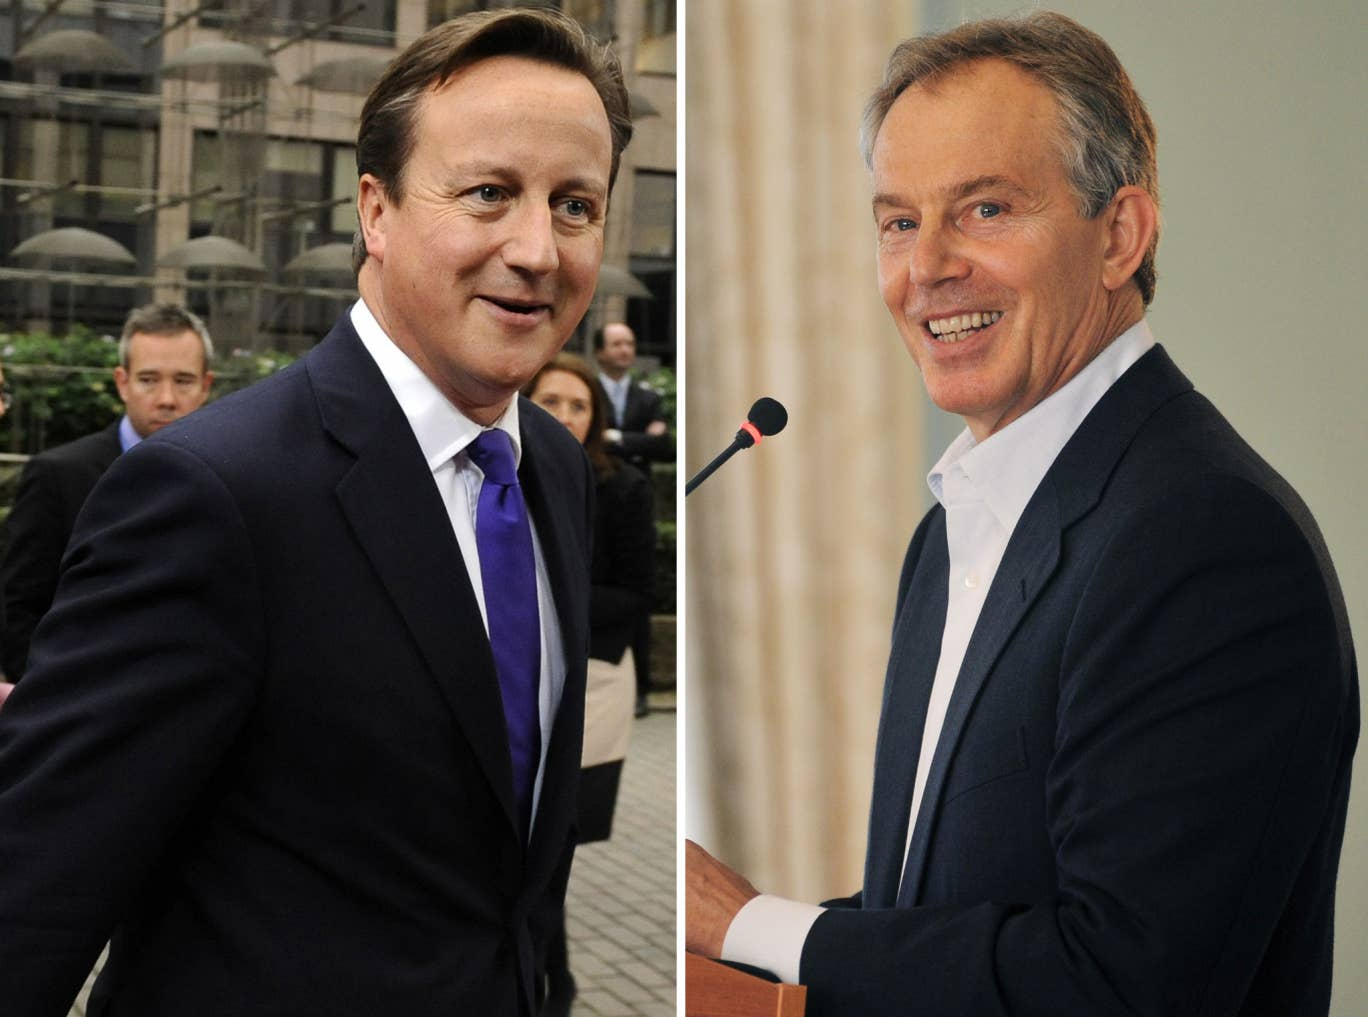 The friendship between former PM Tony Blair and current PM David Cameron is an unlikely one